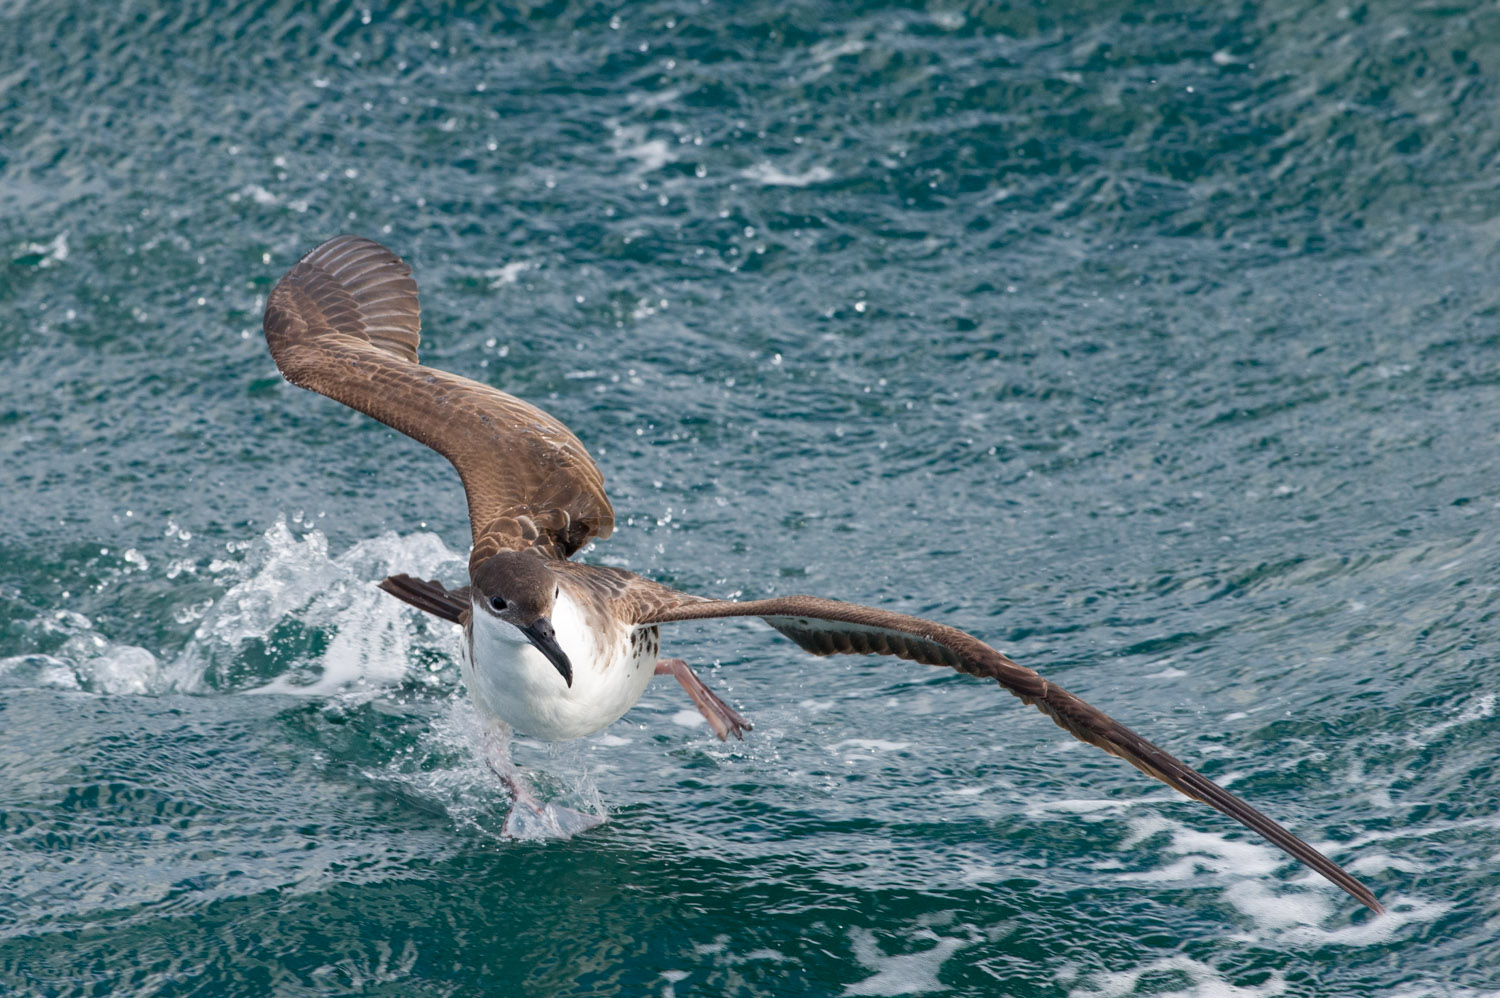 A Greater Shearwater frantically tries to get some of the chum.